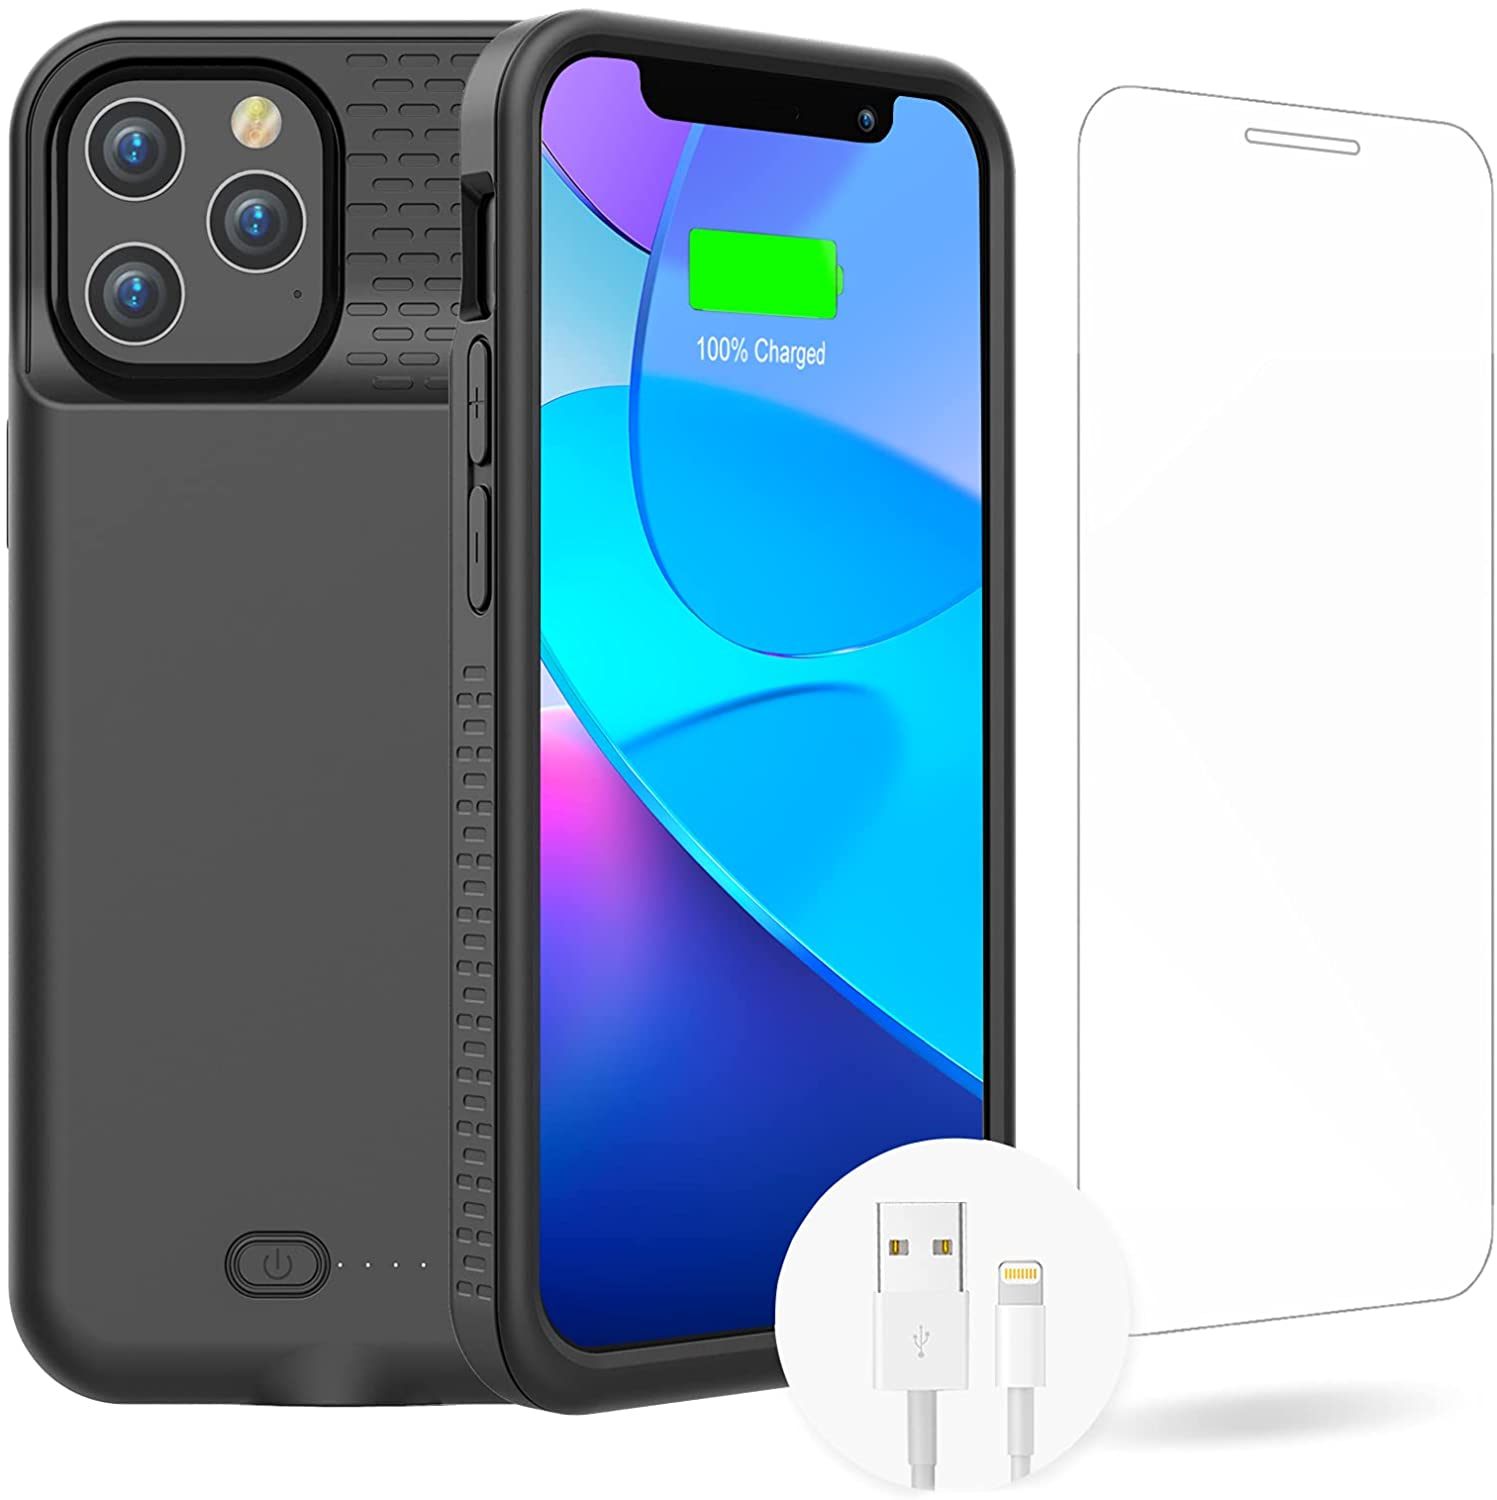 GIN FOXI Battery Case for iPhone 12 Pro Max, Real 7000mAh Ultra-Slim Battery Charging Case Rechargeable Anti-Fall Protection Extended Charger Cover for iPhone 12 Pro Max Battery Case(6.7 inch)